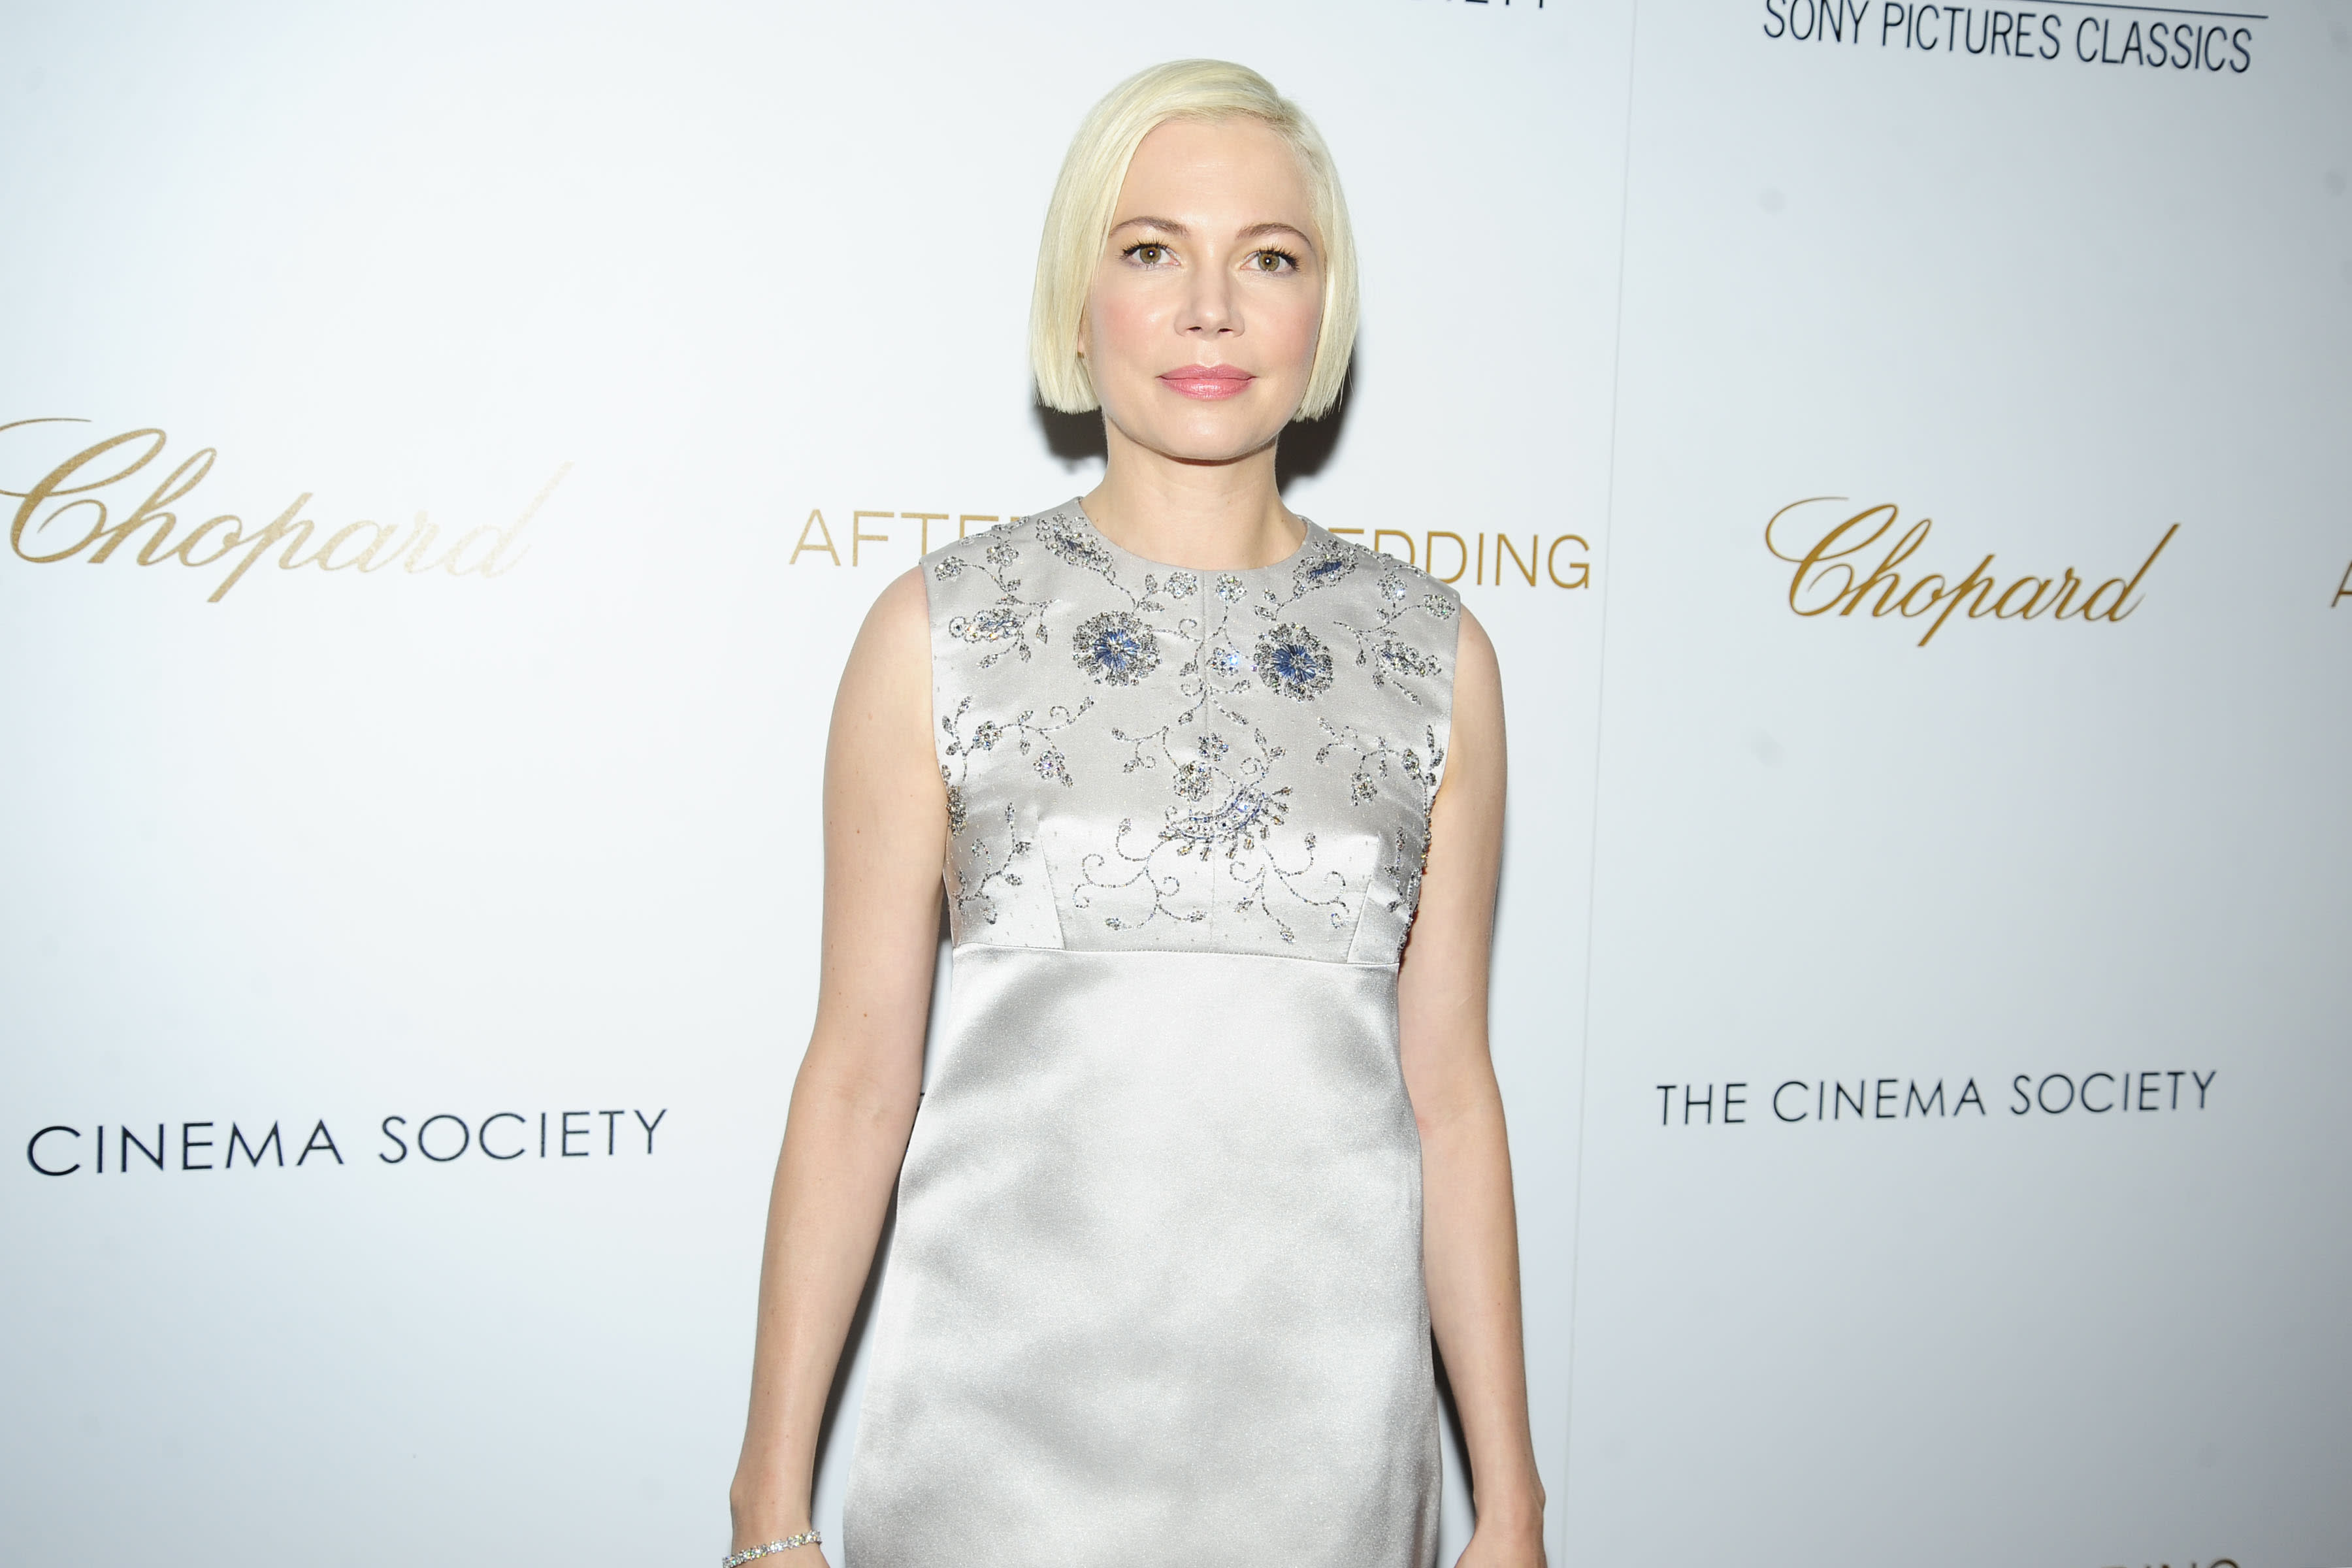 Michelle Williams was reluctant to do TV after 'Dawson's Creek': 'It felt like a stain'